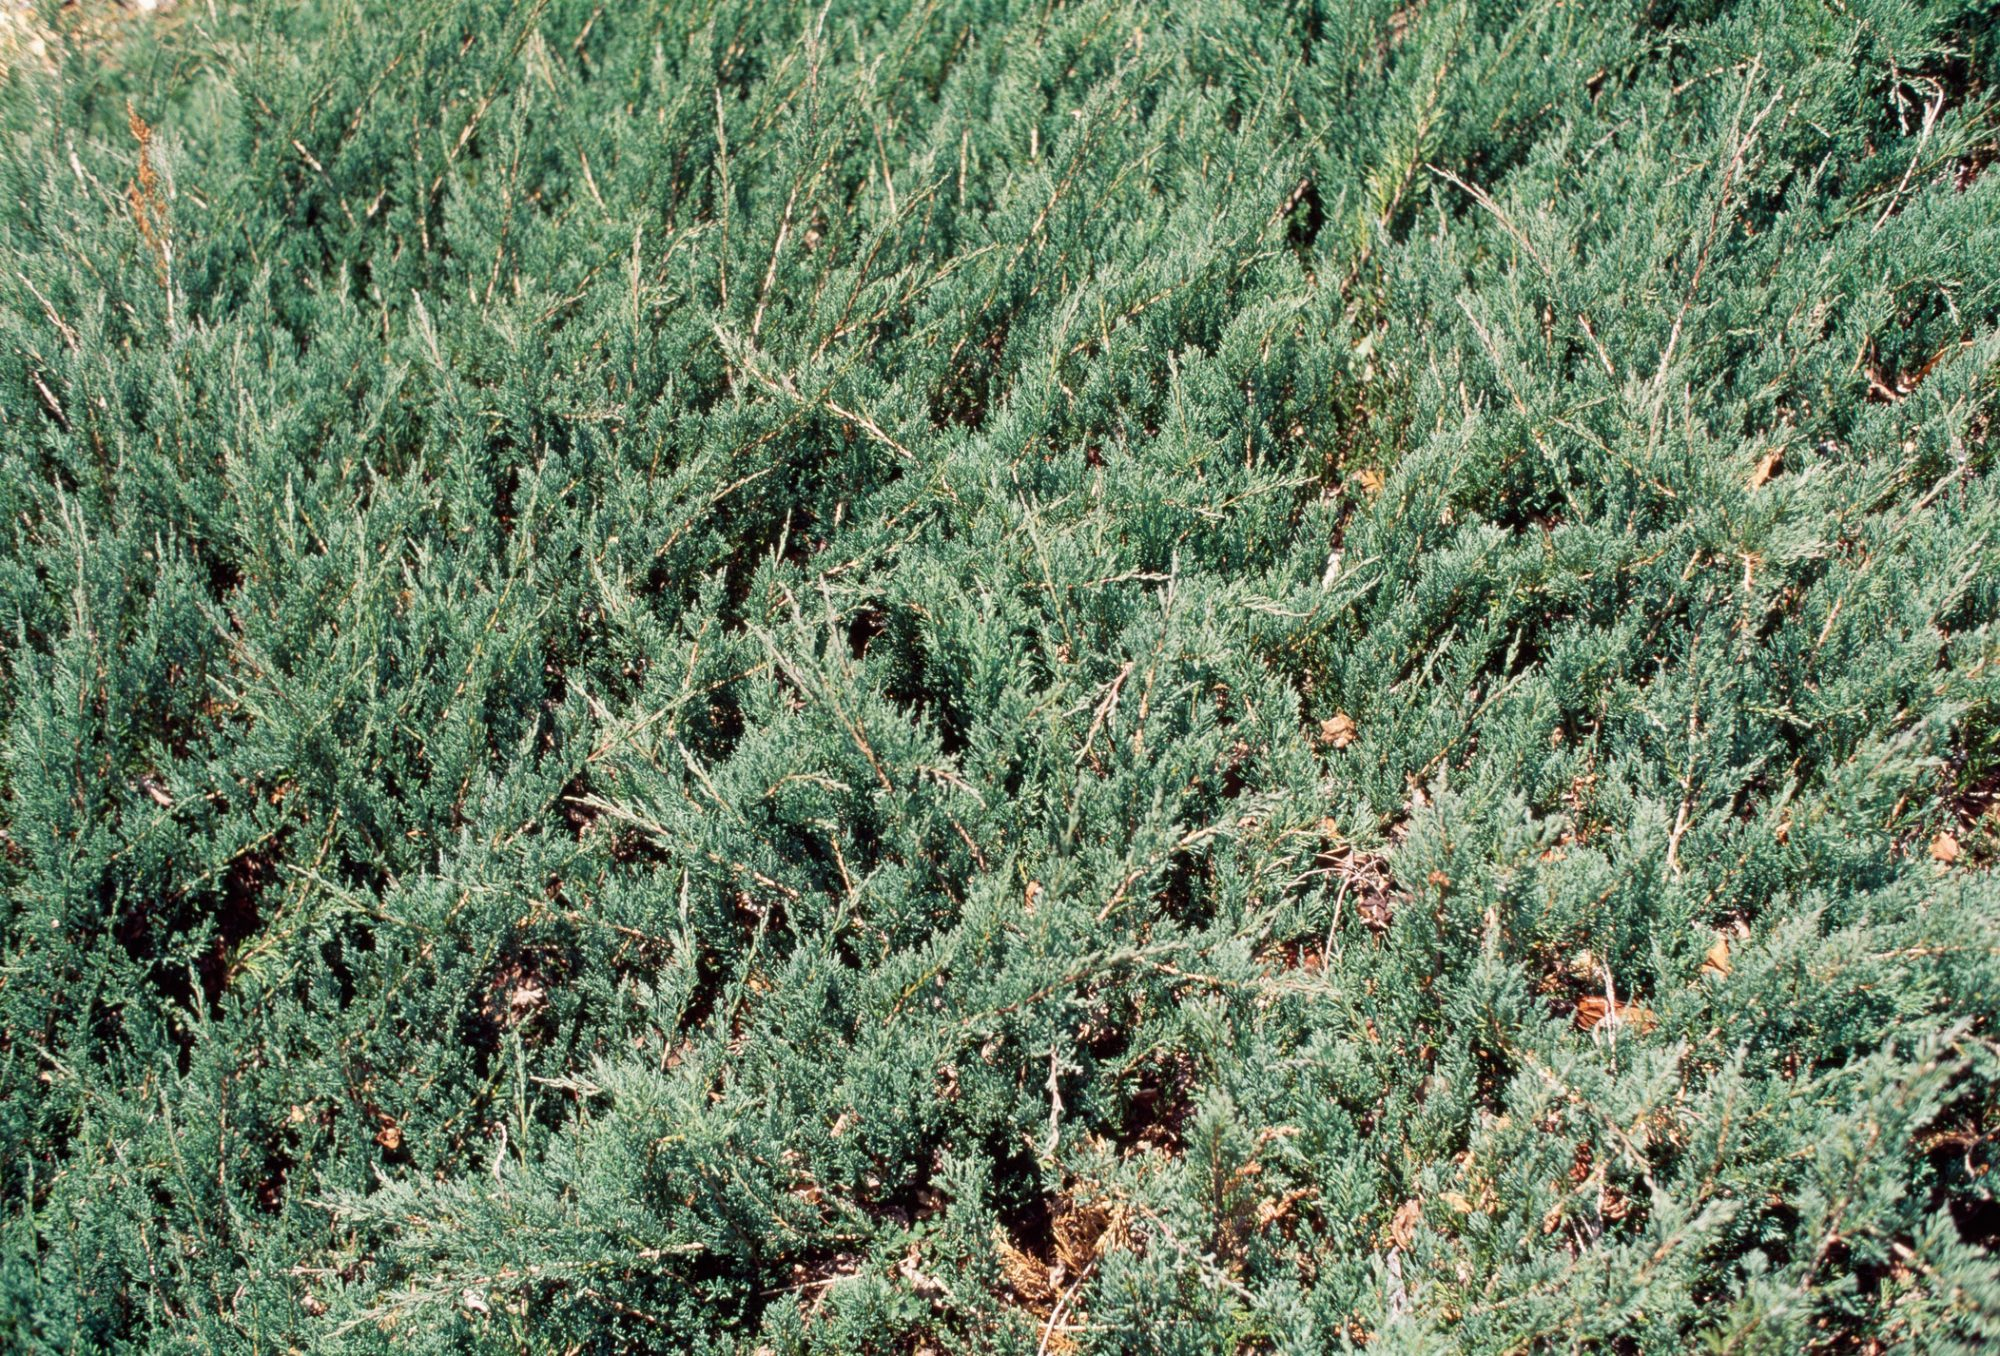 Creeping juniper ground cover